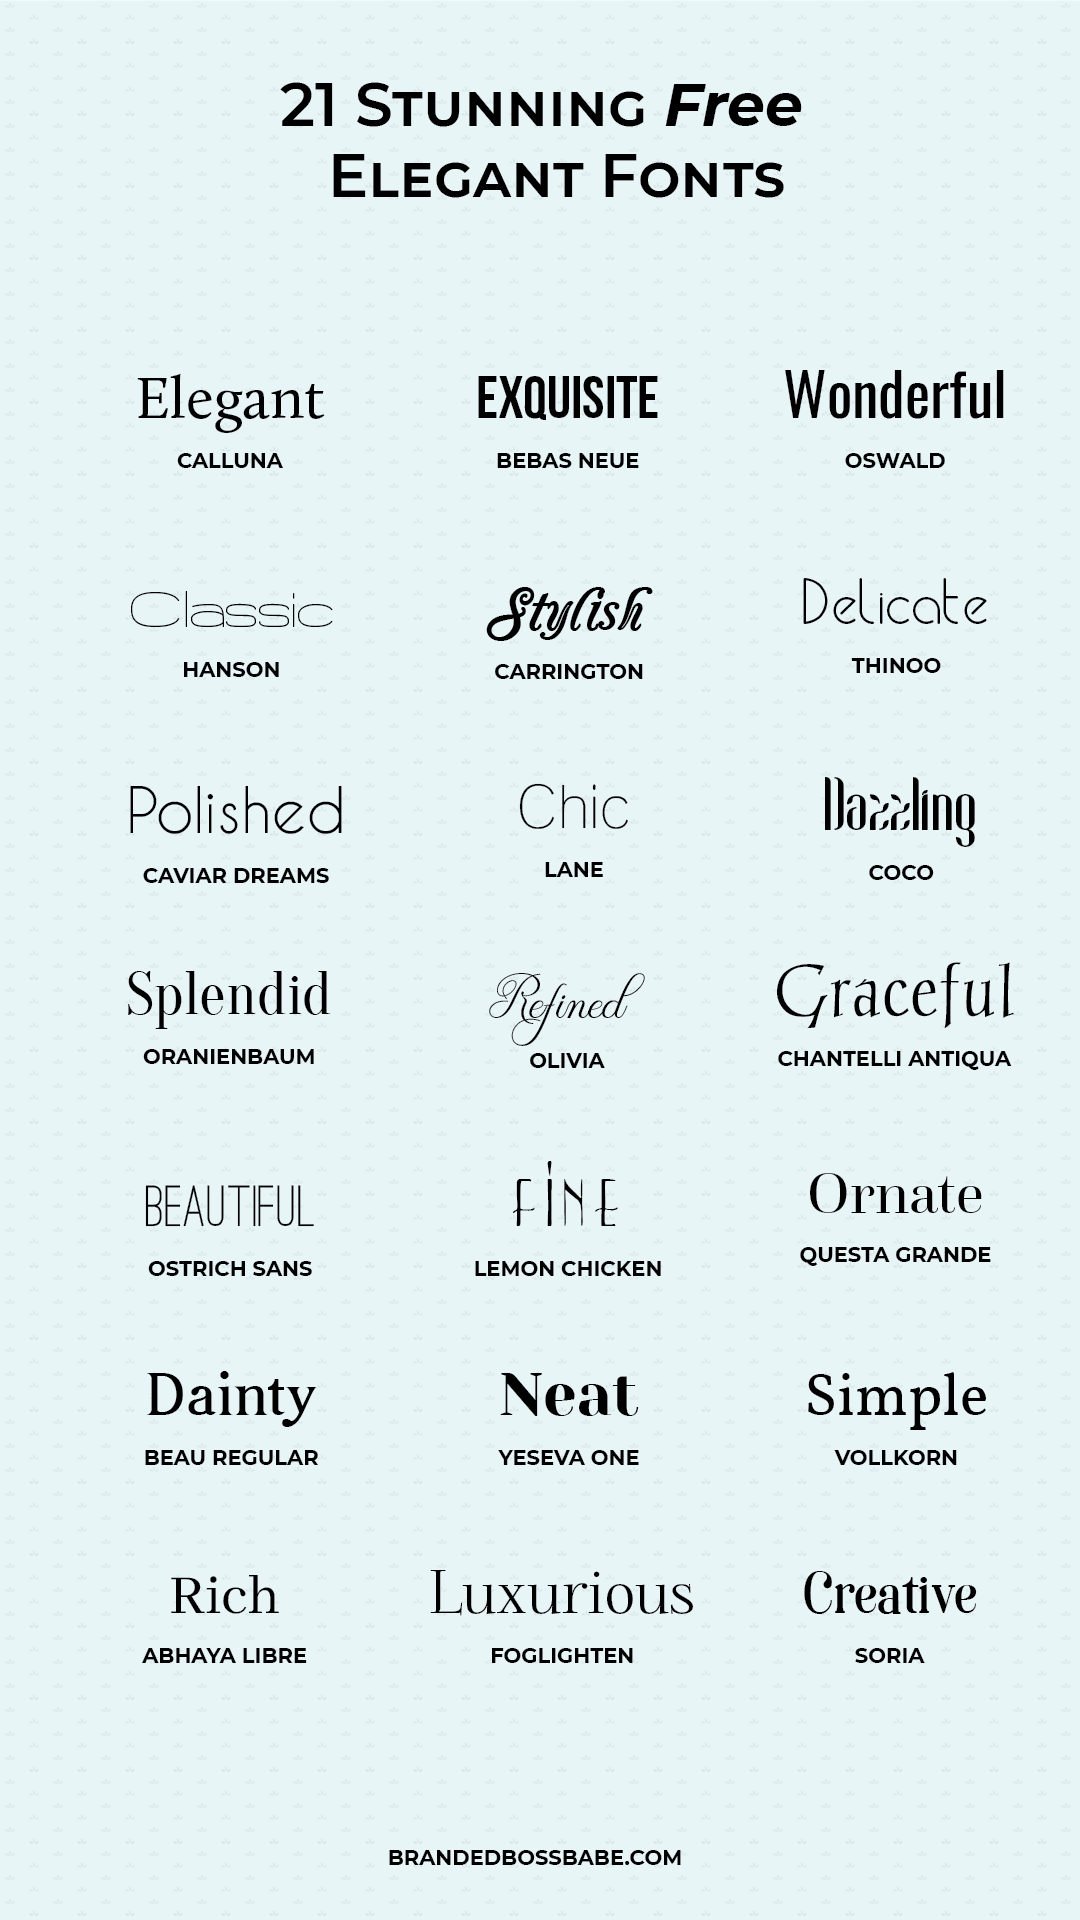 Check out these beautiful elegant fonts that are free to download and use. #logodesign #elegantfonts